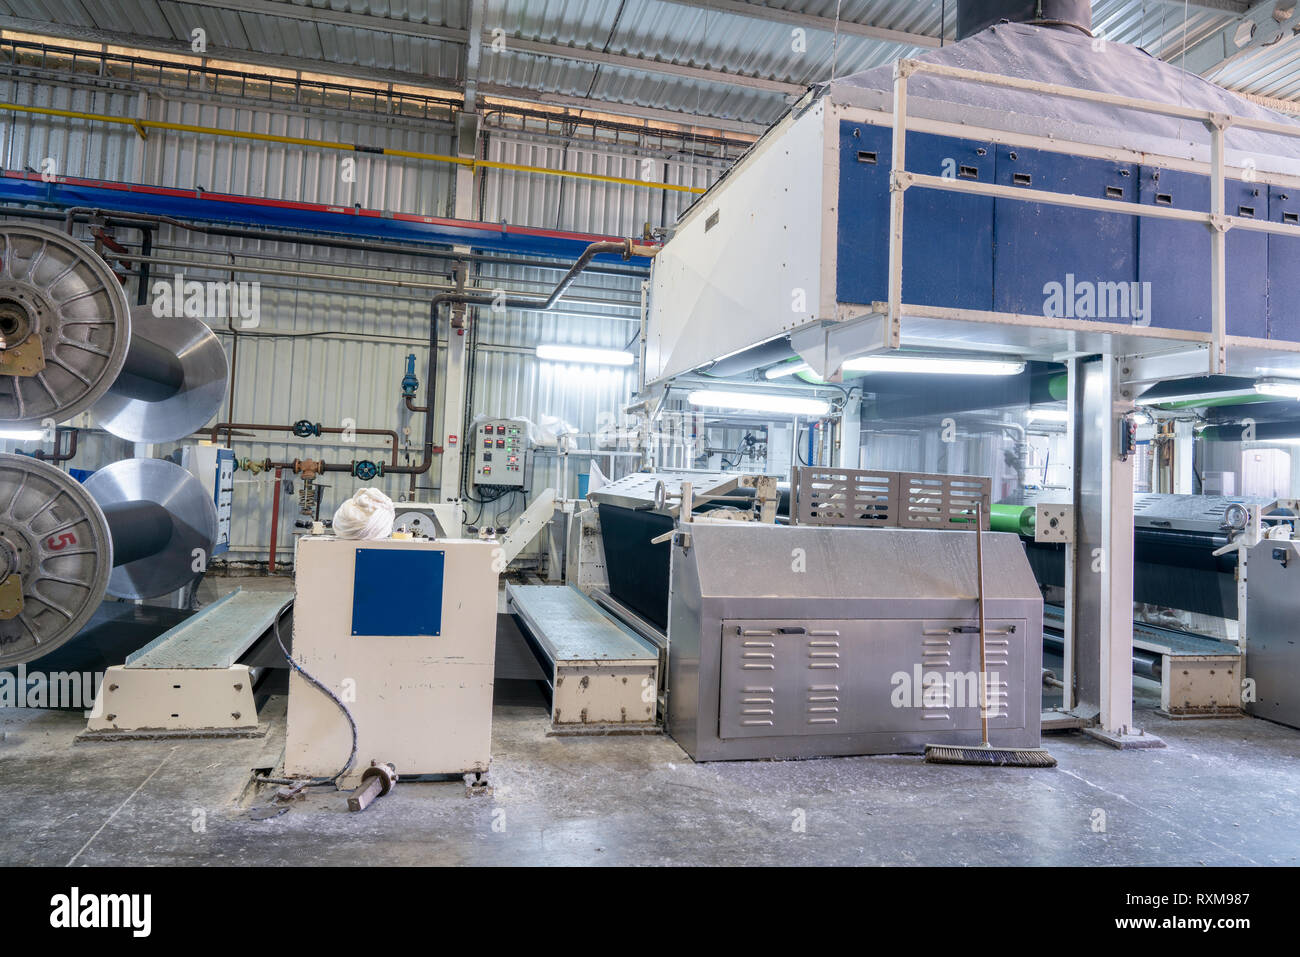 Interior of Textile factory with automated machinery.Concept of Industry and Technology - Stock Image